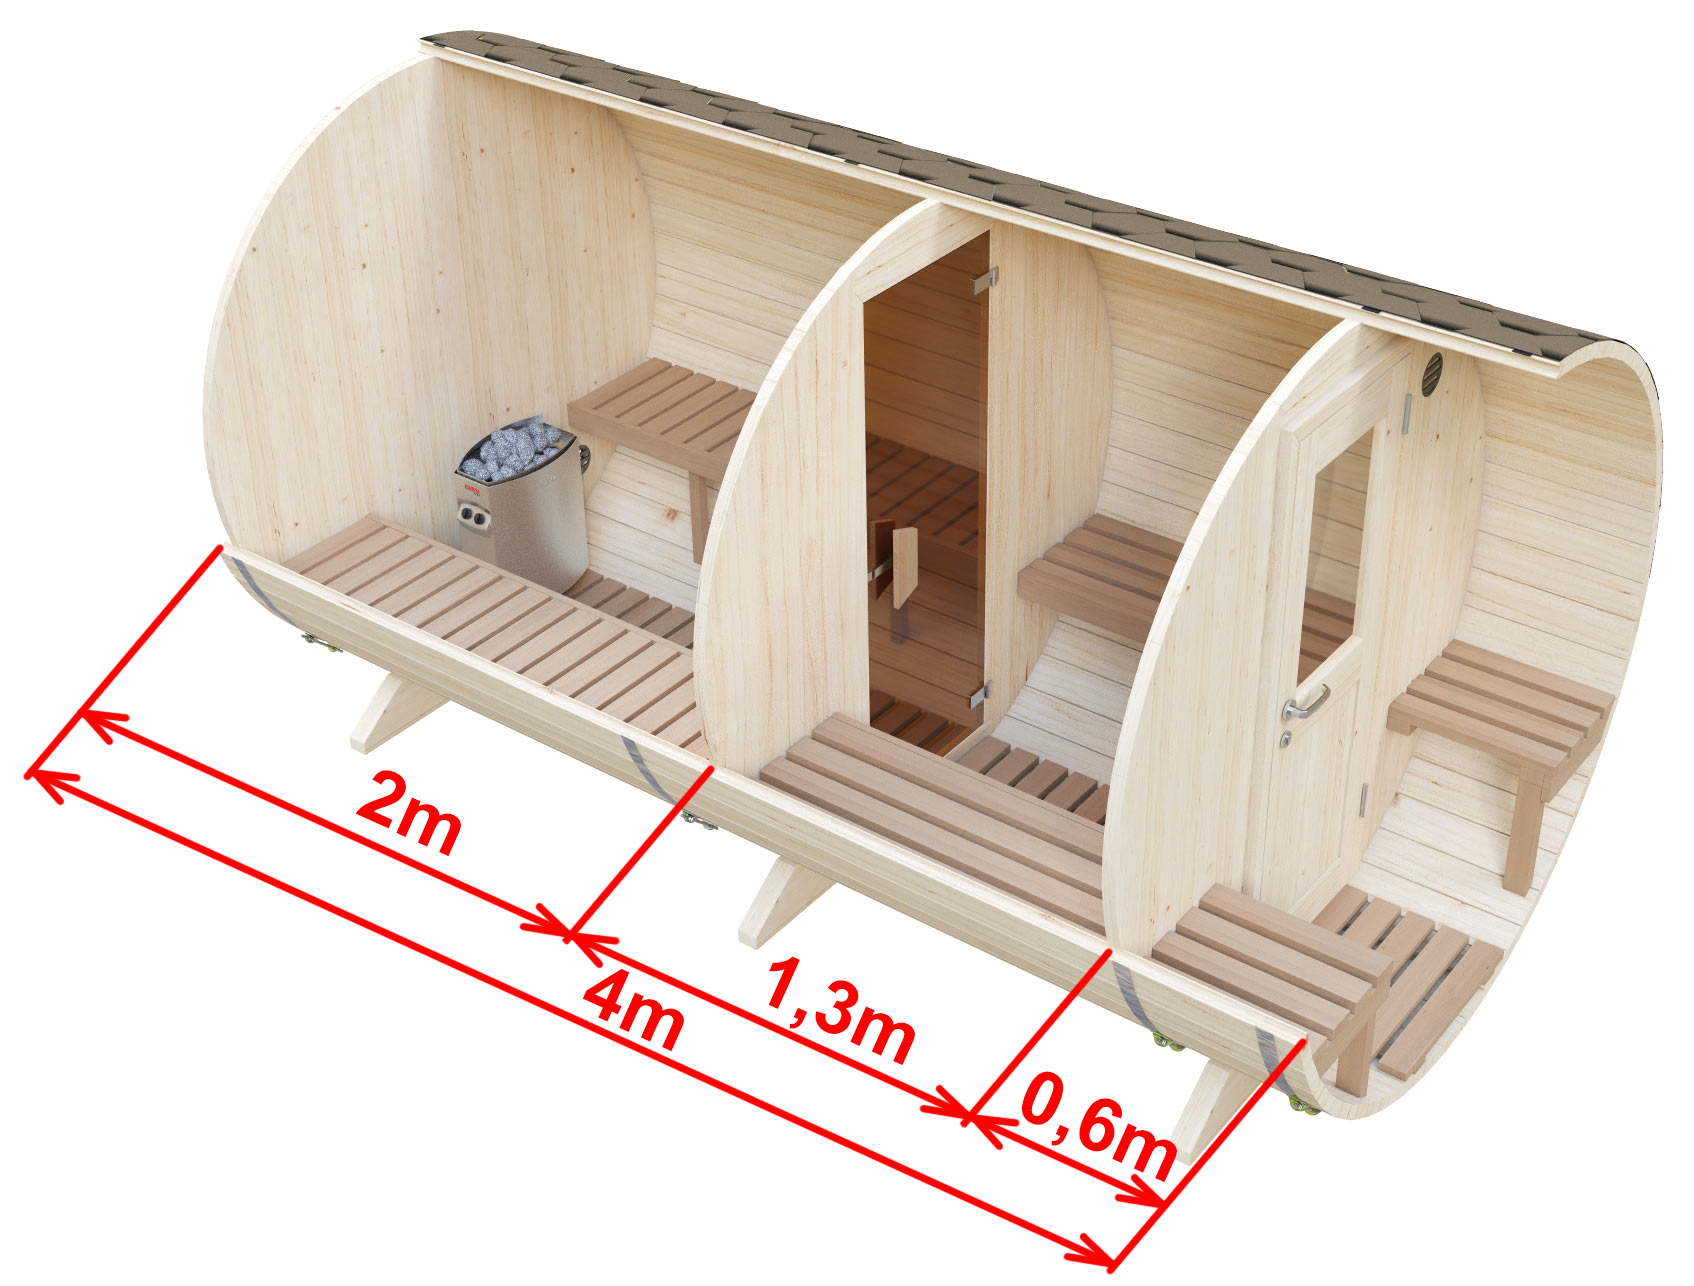 Dimensions of the sauna with cloakroom and outdoor seats